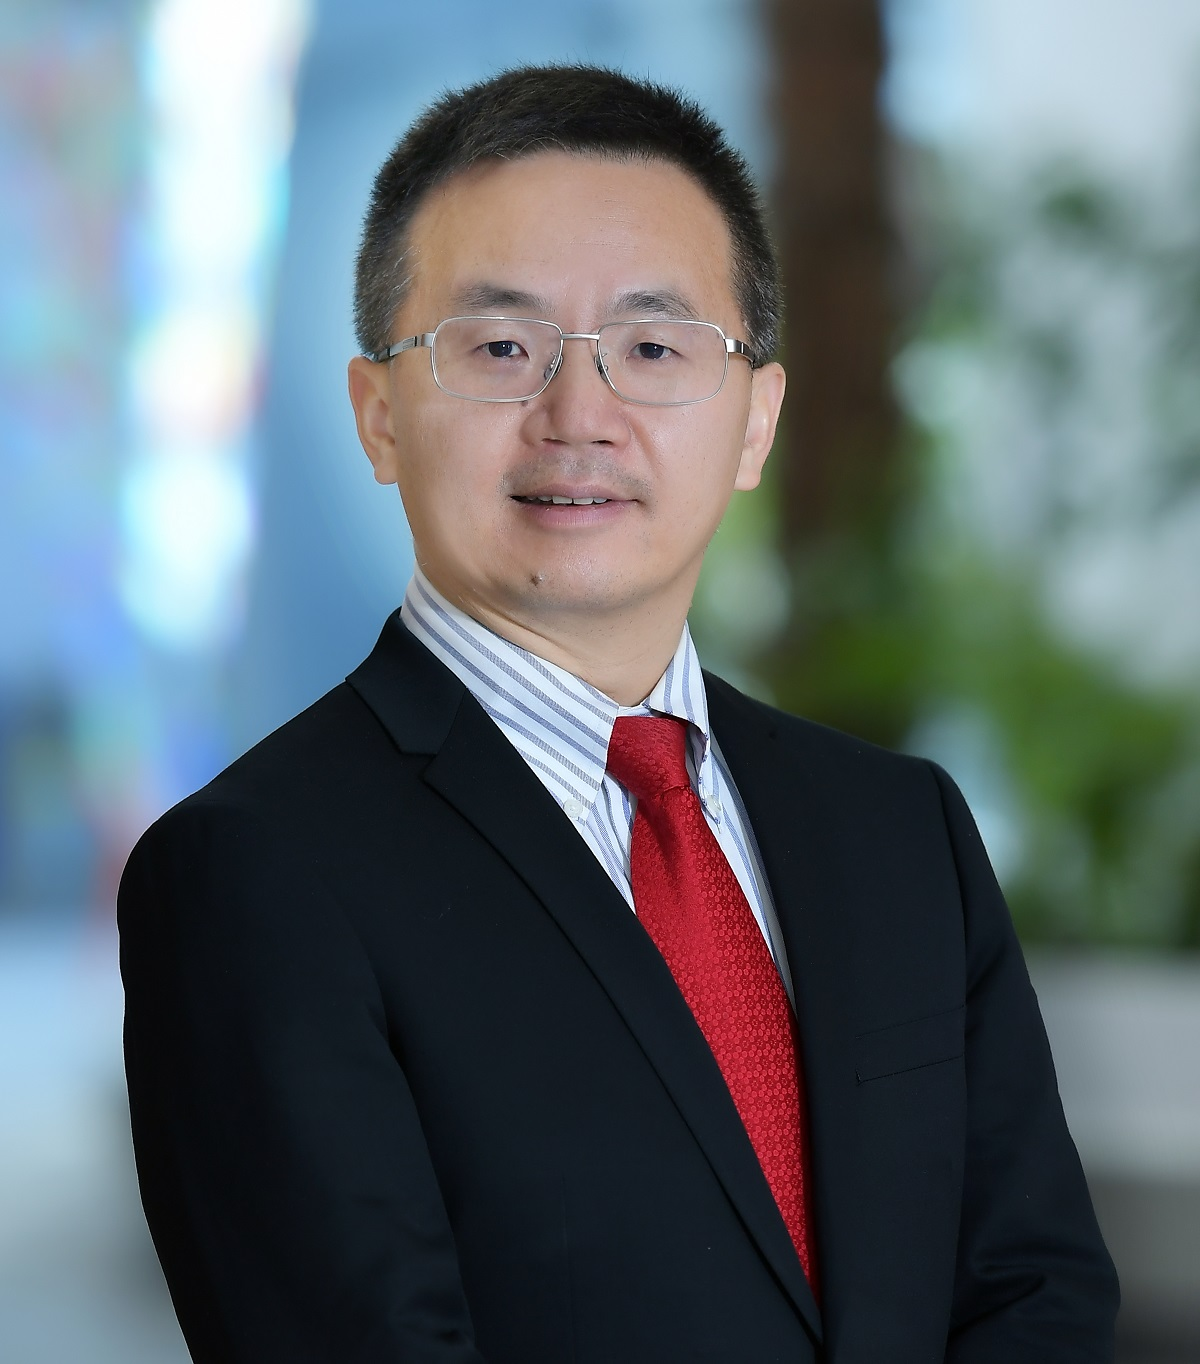 Introducing Dr. Samuel Mao, Masdar Institute's New Senior Director